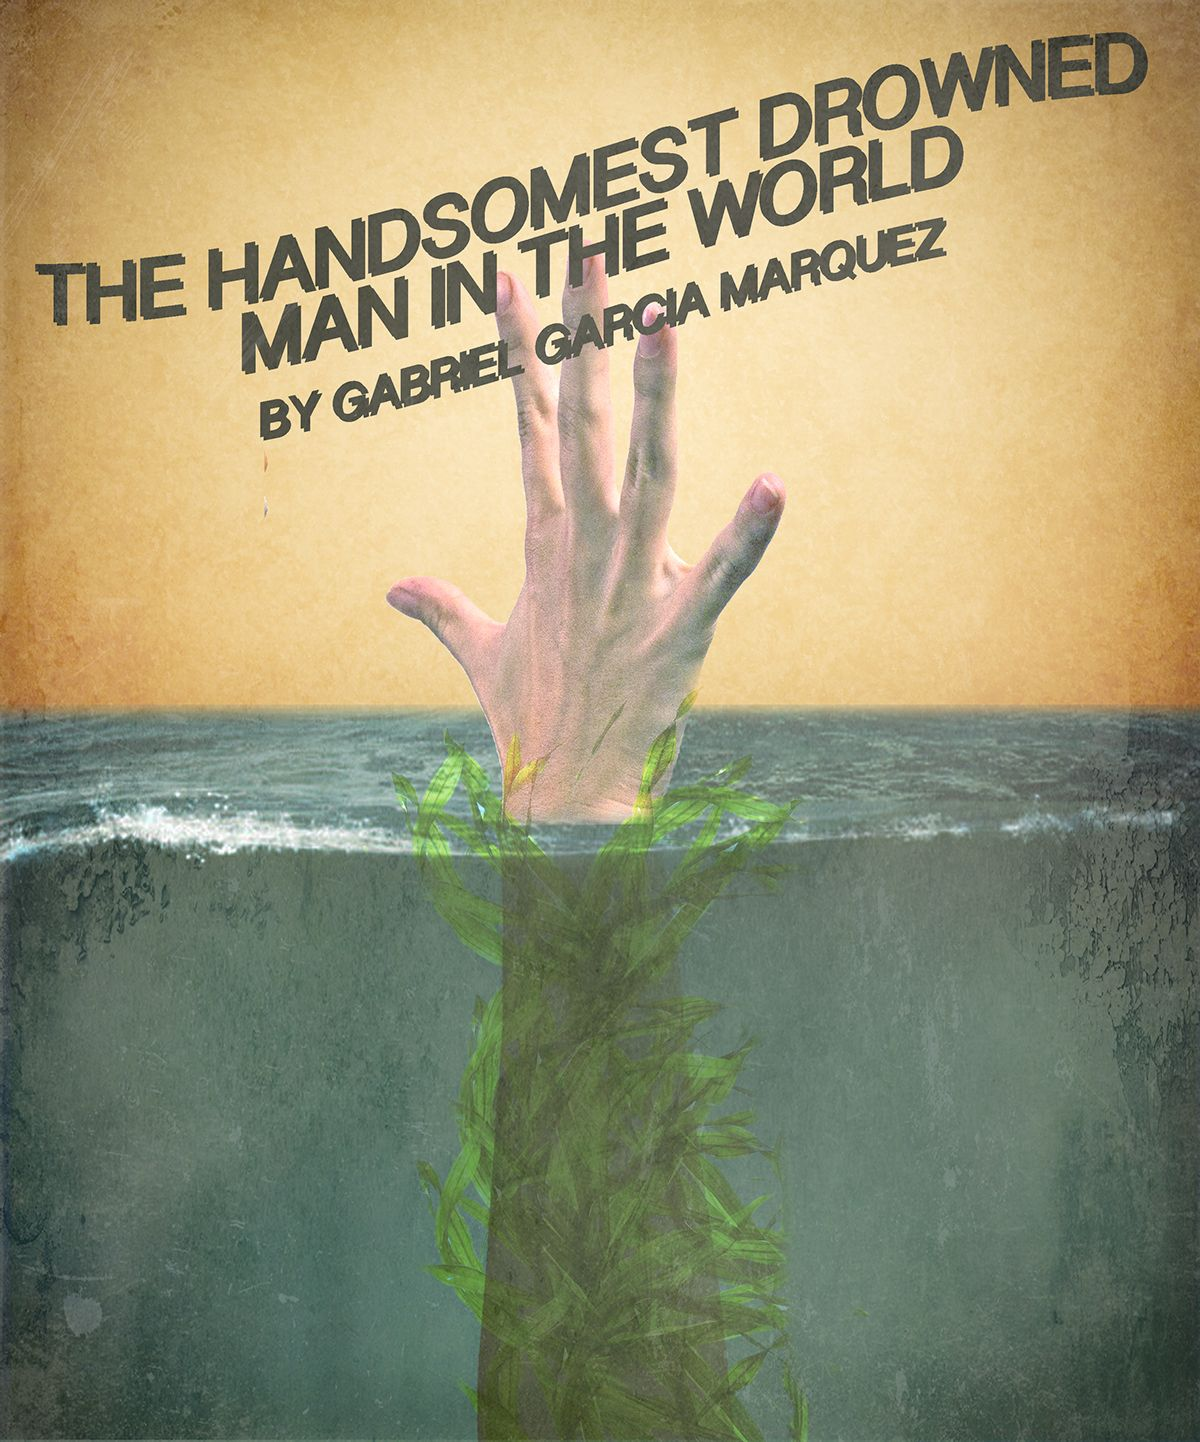 the handsomest drowned man in the world by gabrielle garcia  the handsomest drowned man in the world by gabrielle garcia marquez pub 1968